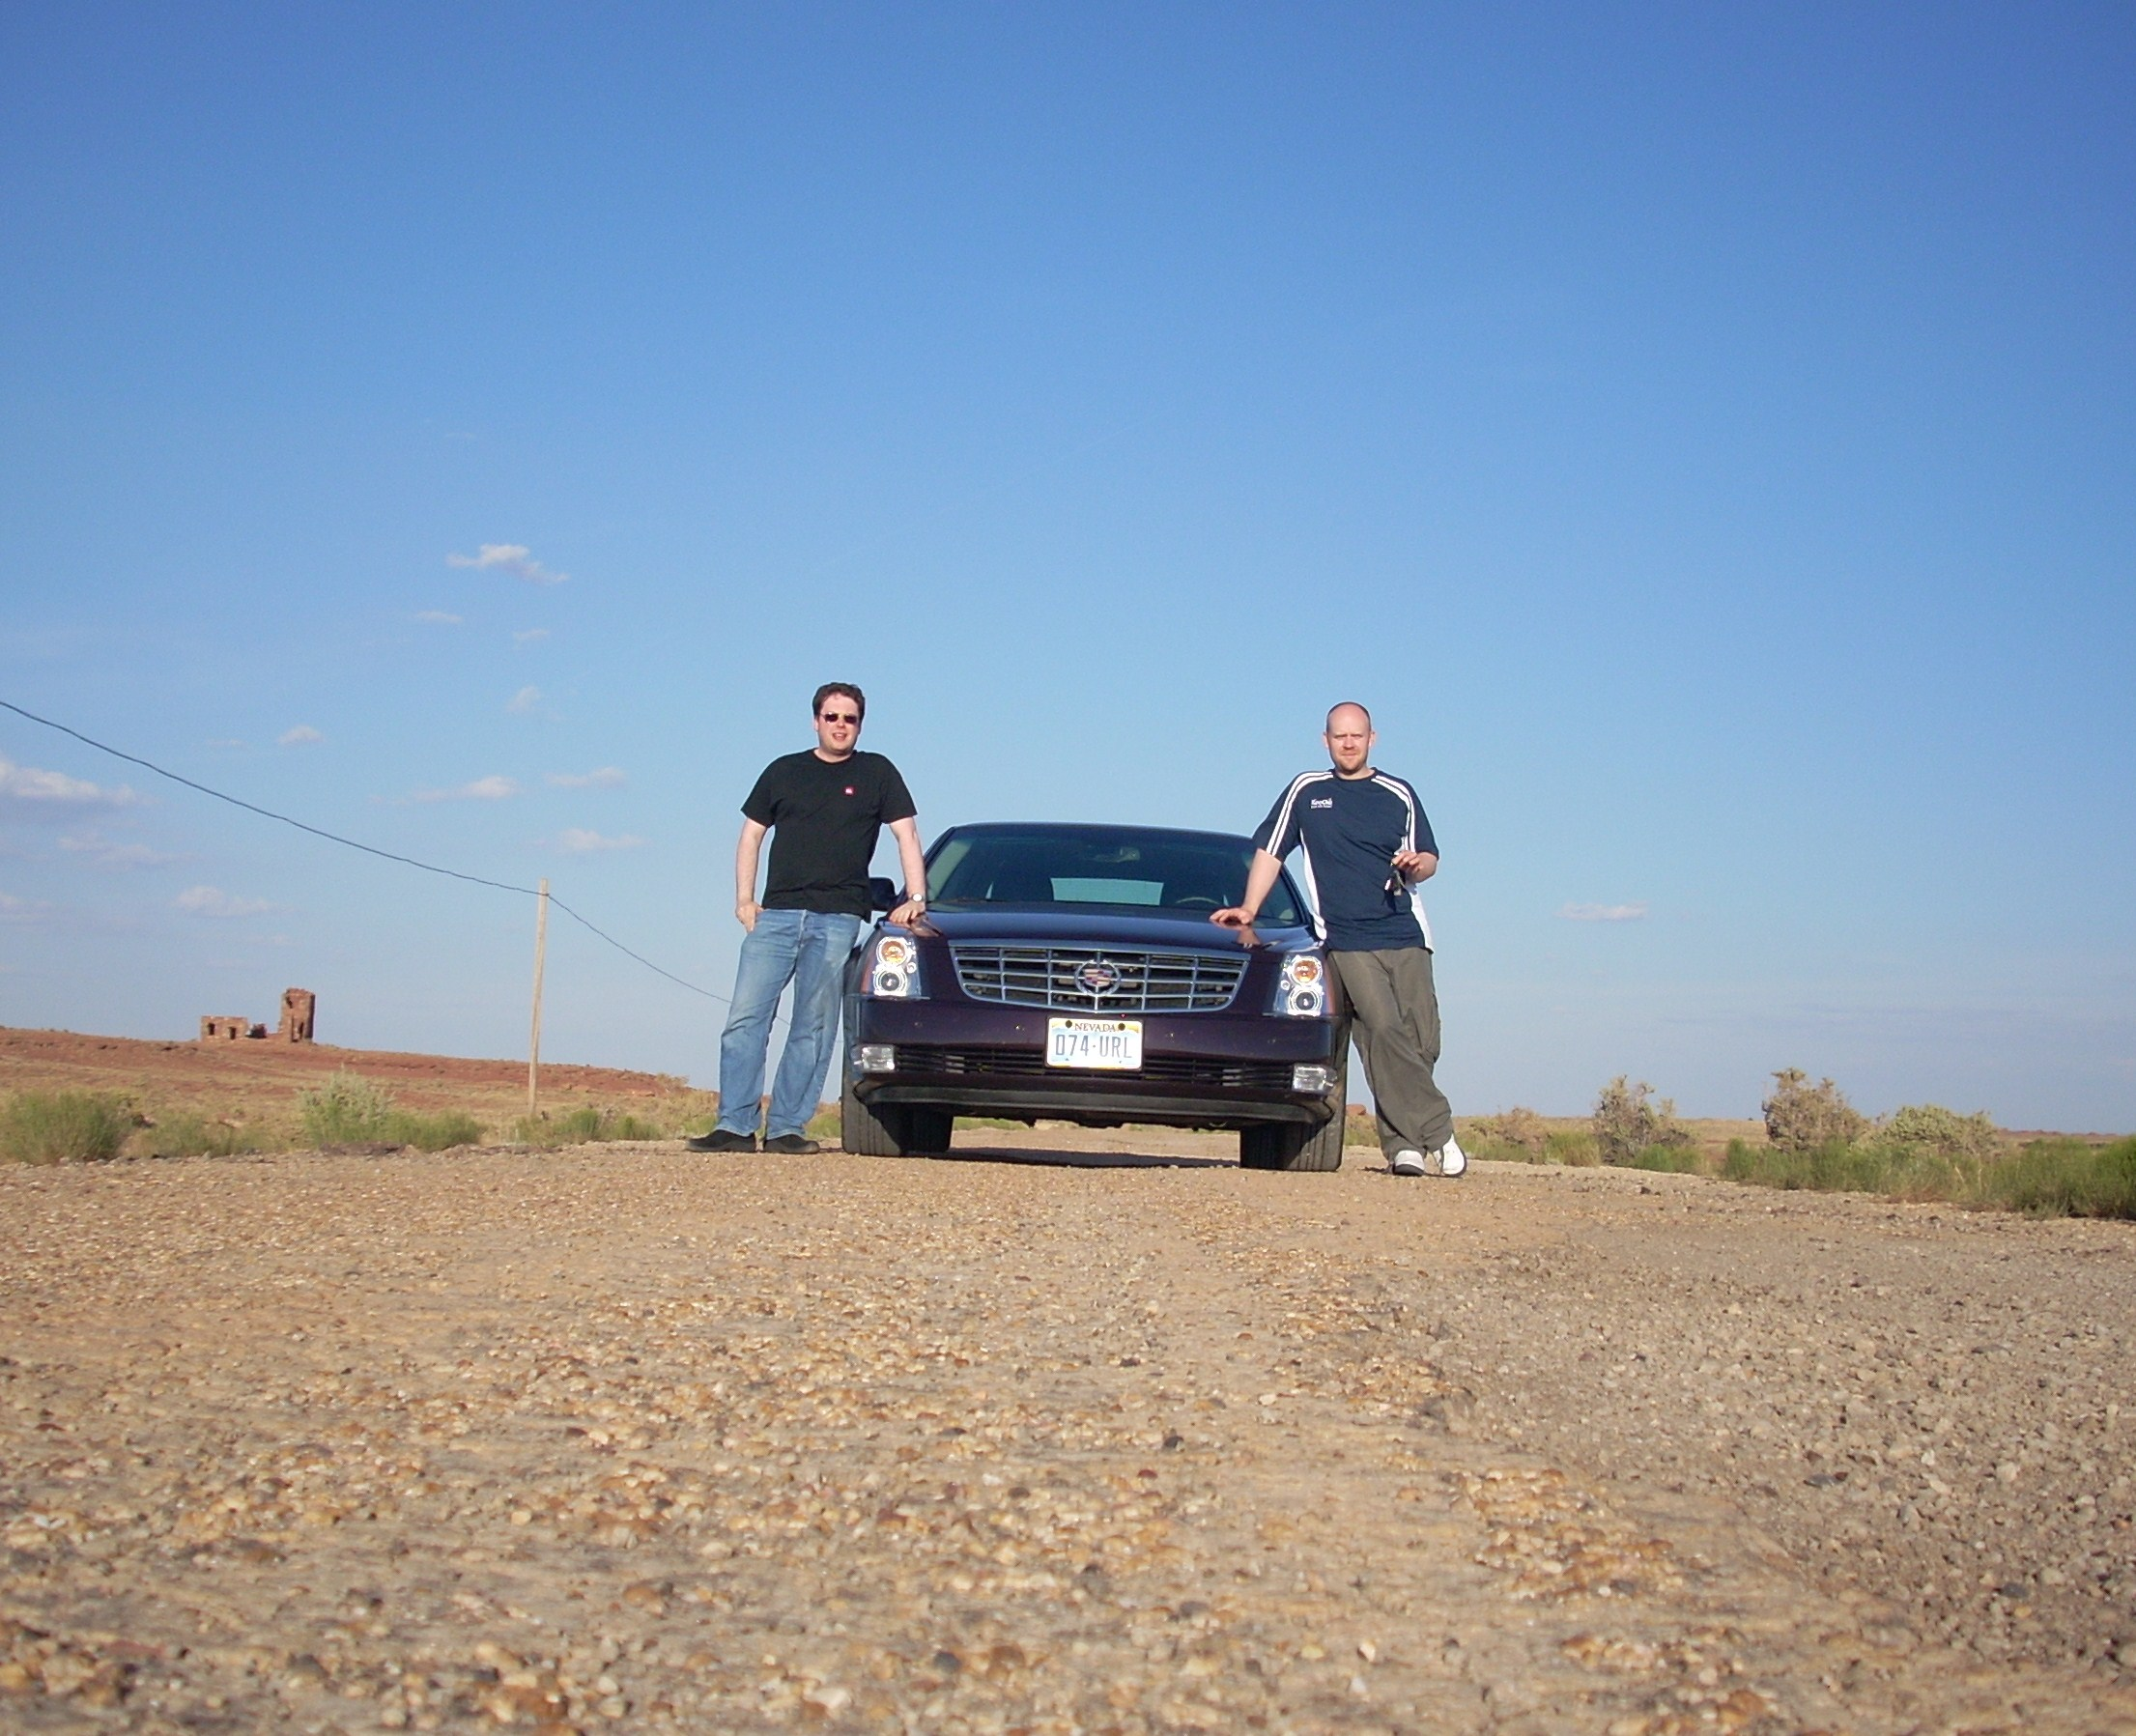 Just off Route 66 on our way to Texas